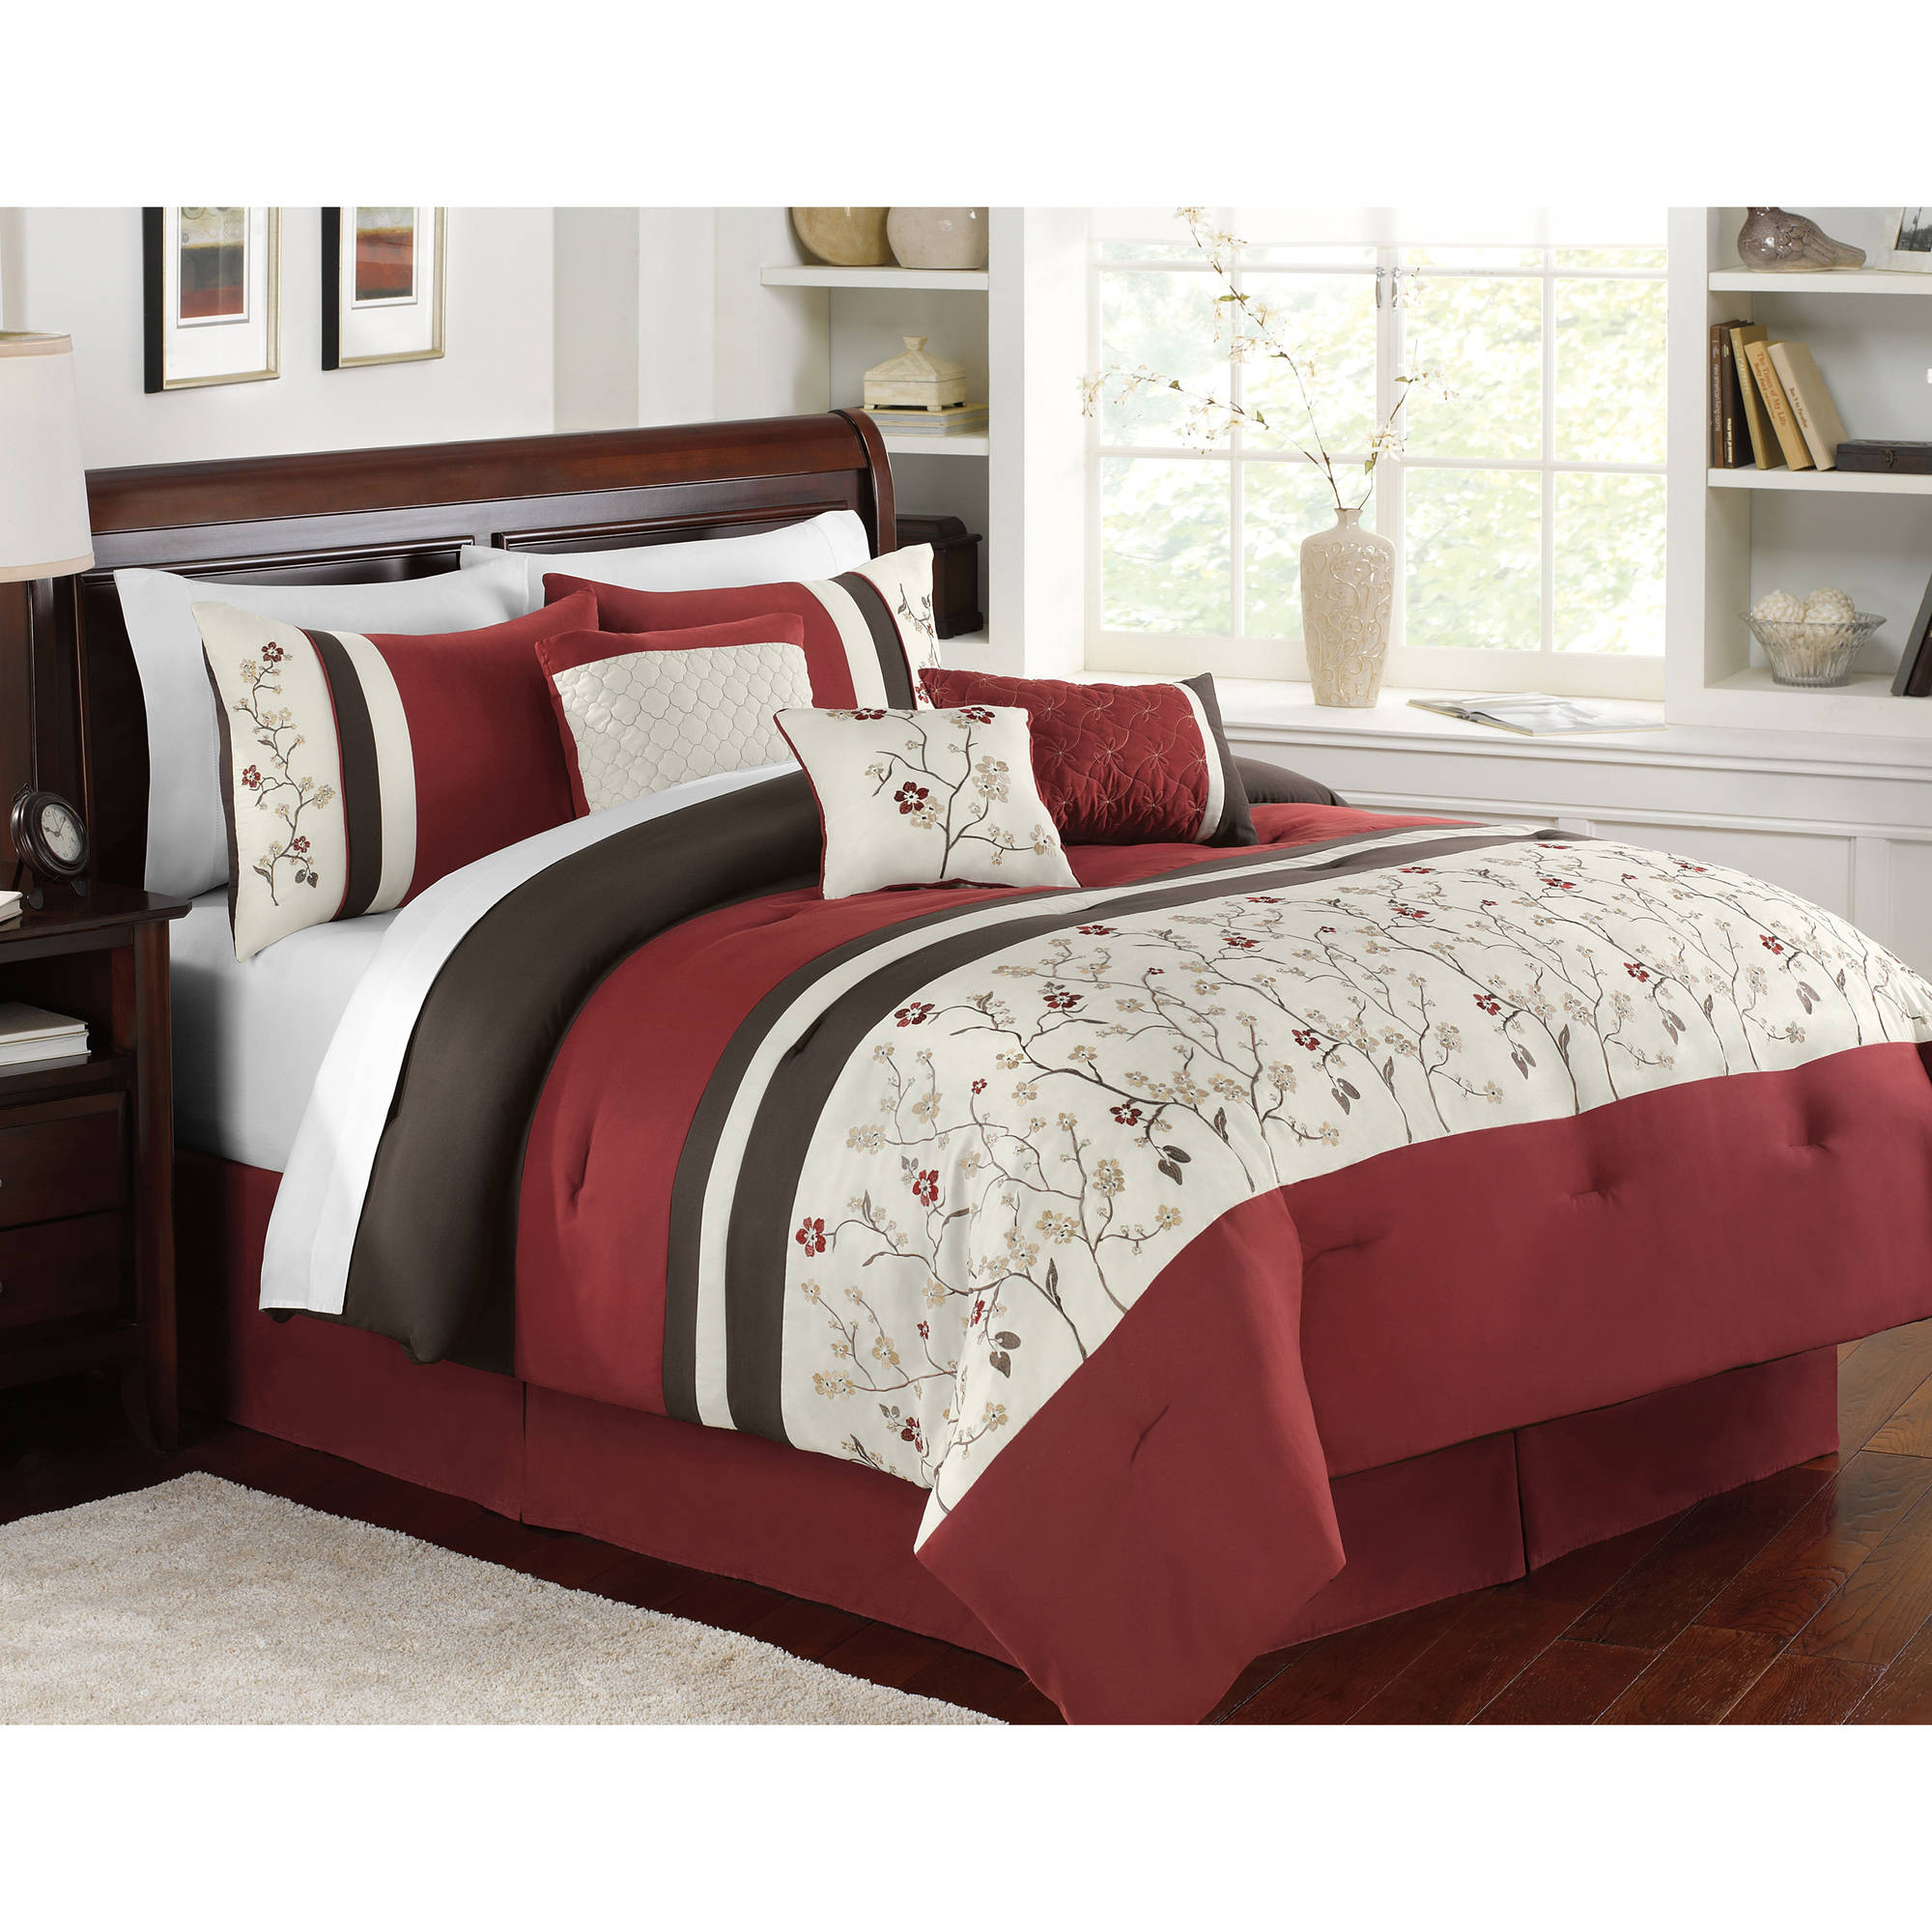 Better homes and gardens 7 piece burgundy brown vines bedding comforter set set